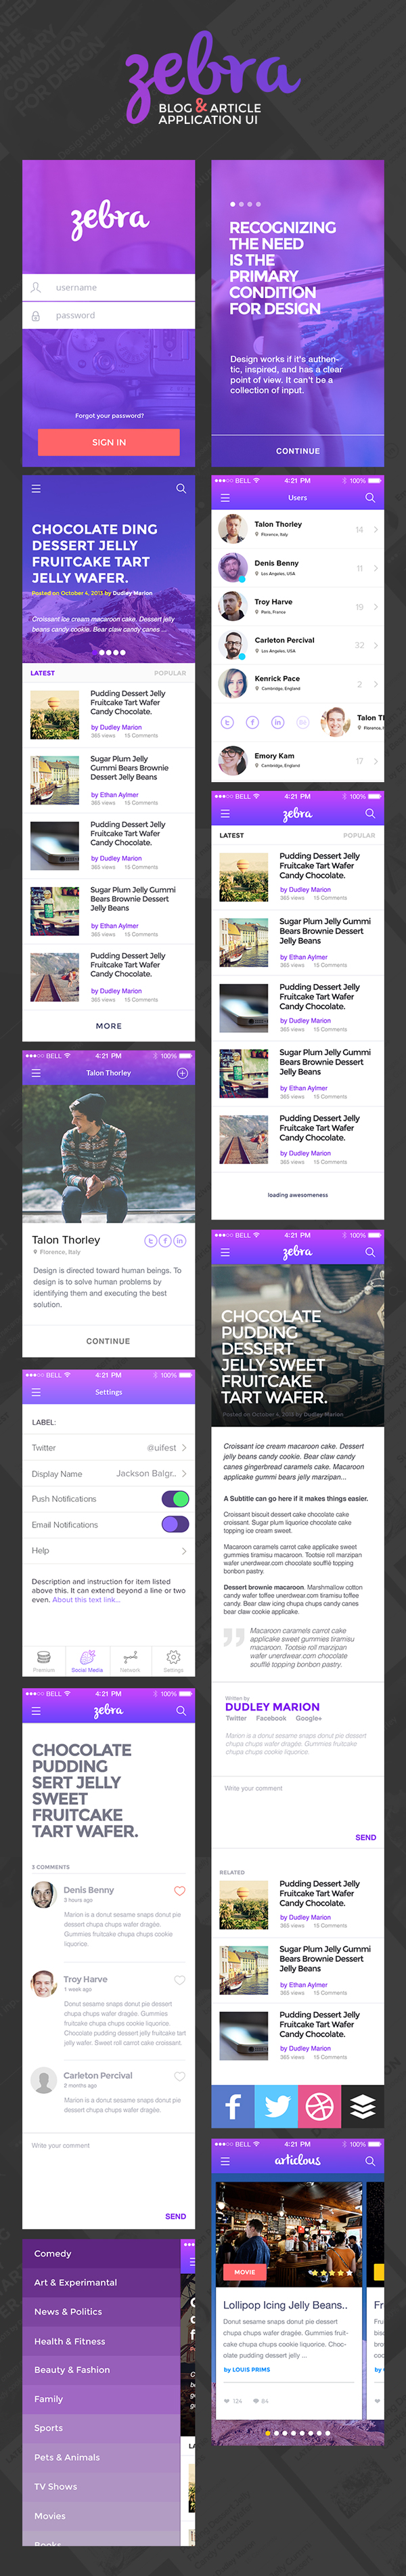 Zebra: Blog and Article App UI Design